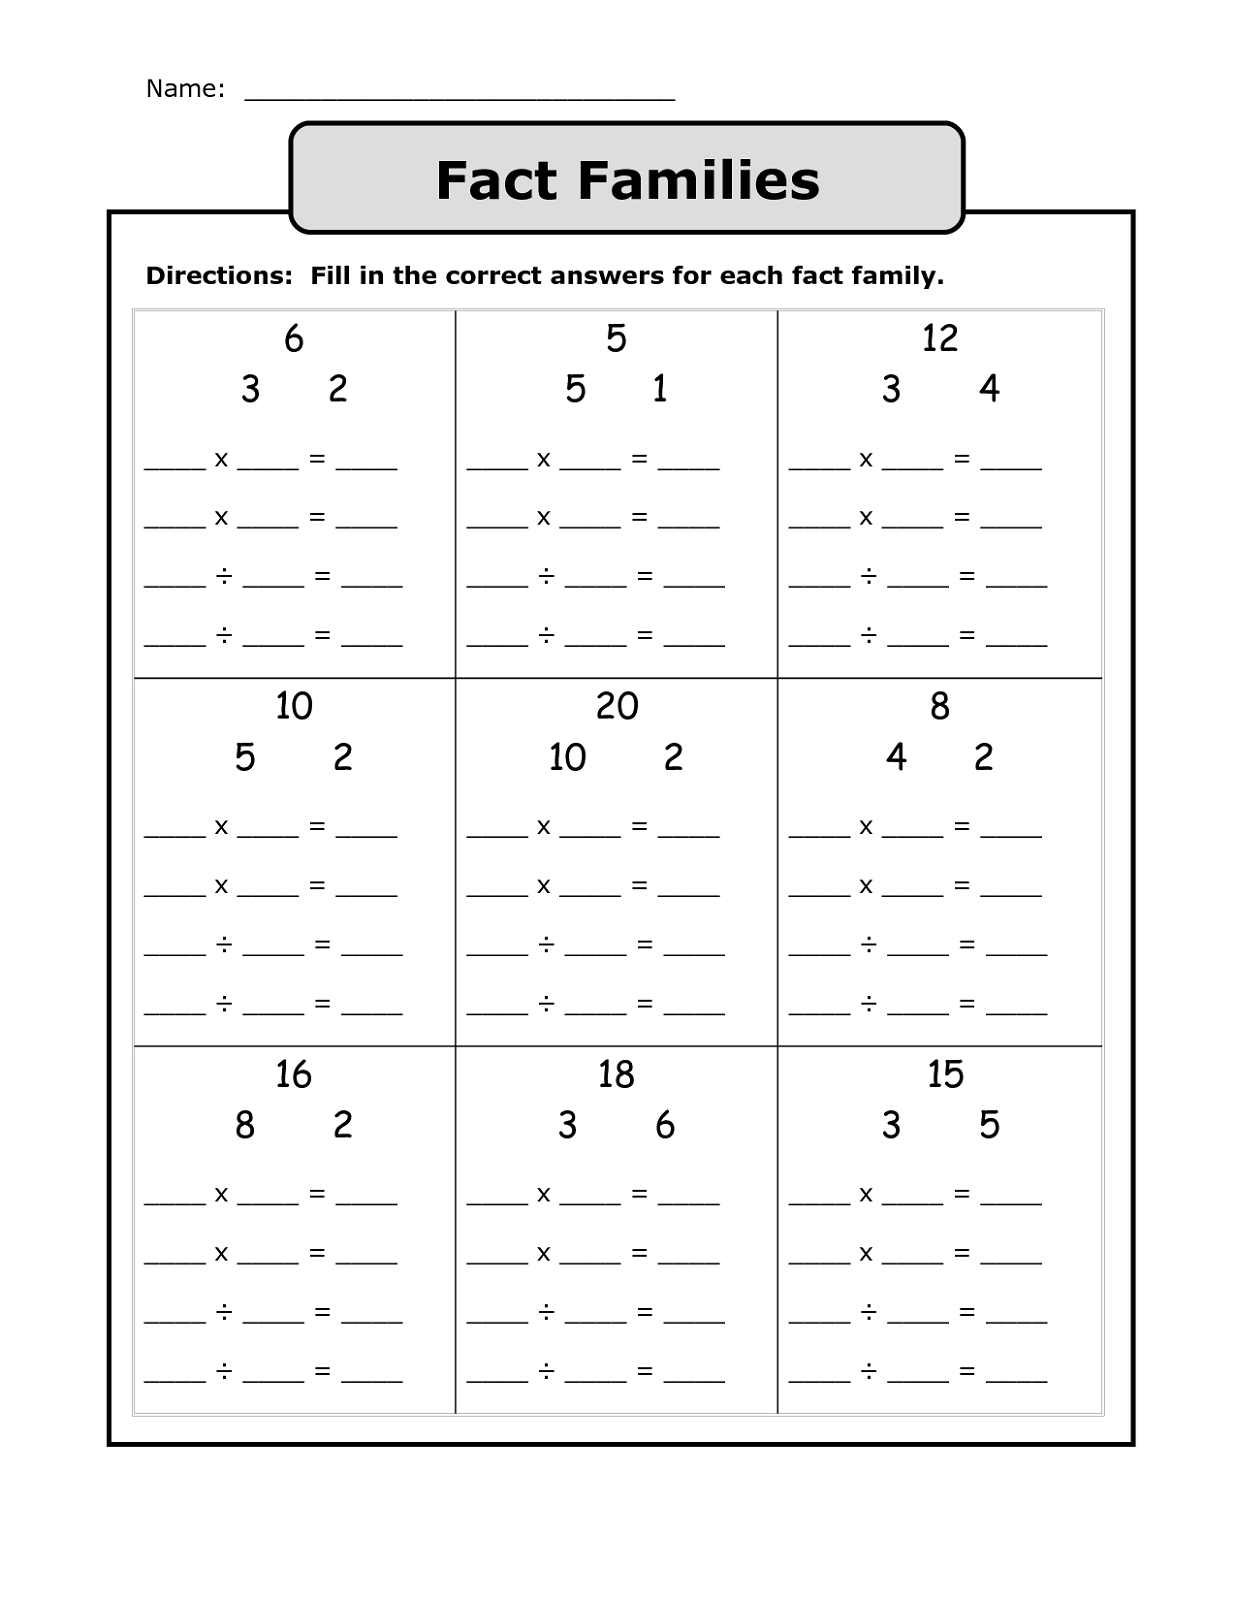 blank fact family worksheet exercise